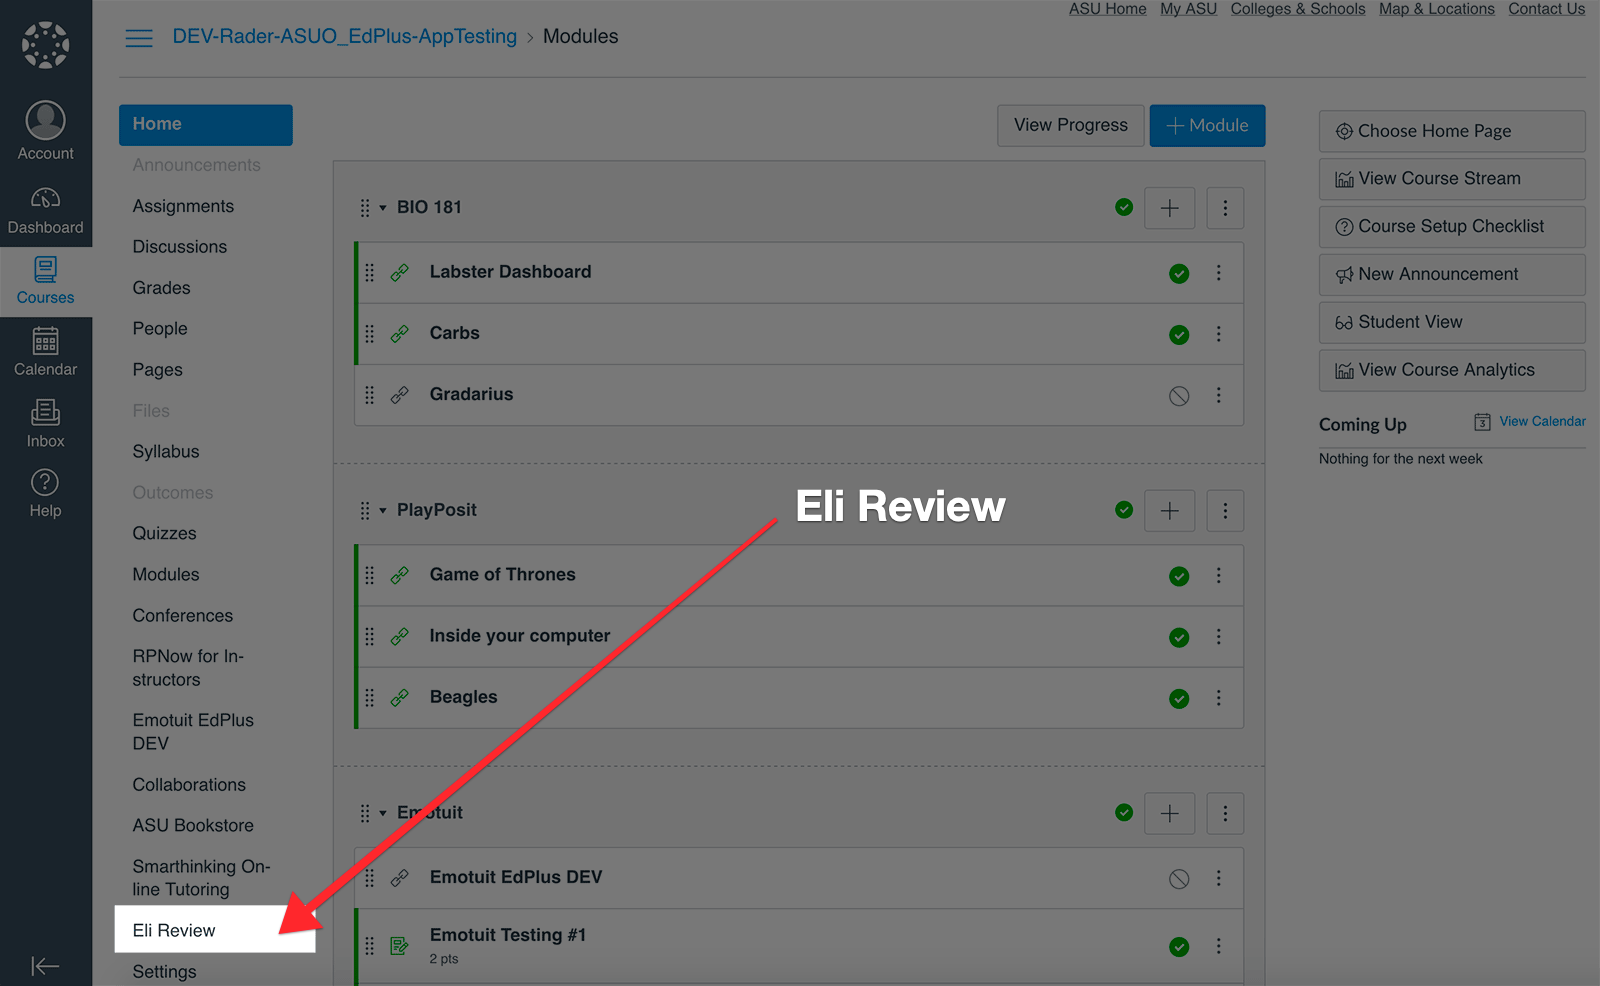 Locate Eli Review in the menu